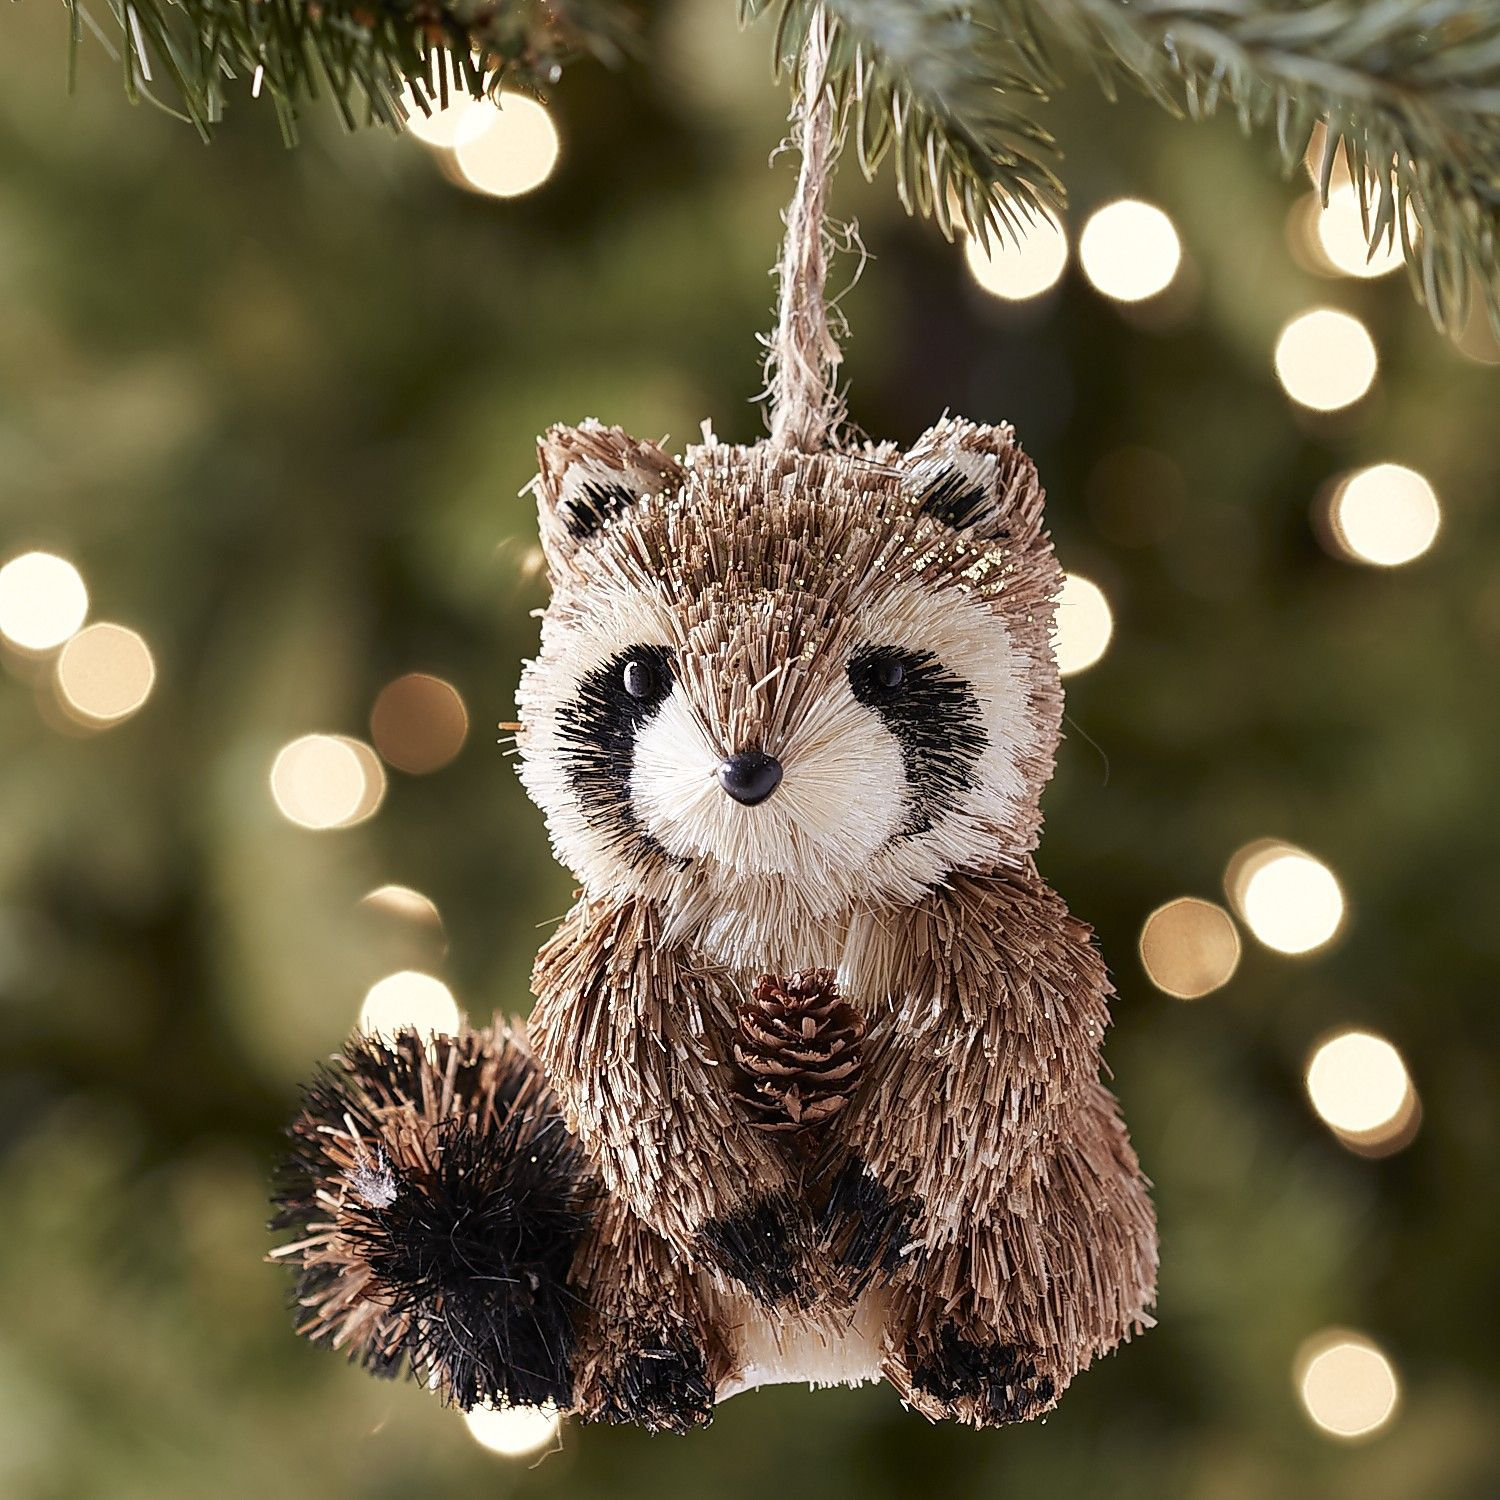 Pier 1 Christmas Ornaments.Pier 1 Natural Raccoon Ornament Holidays Christmas